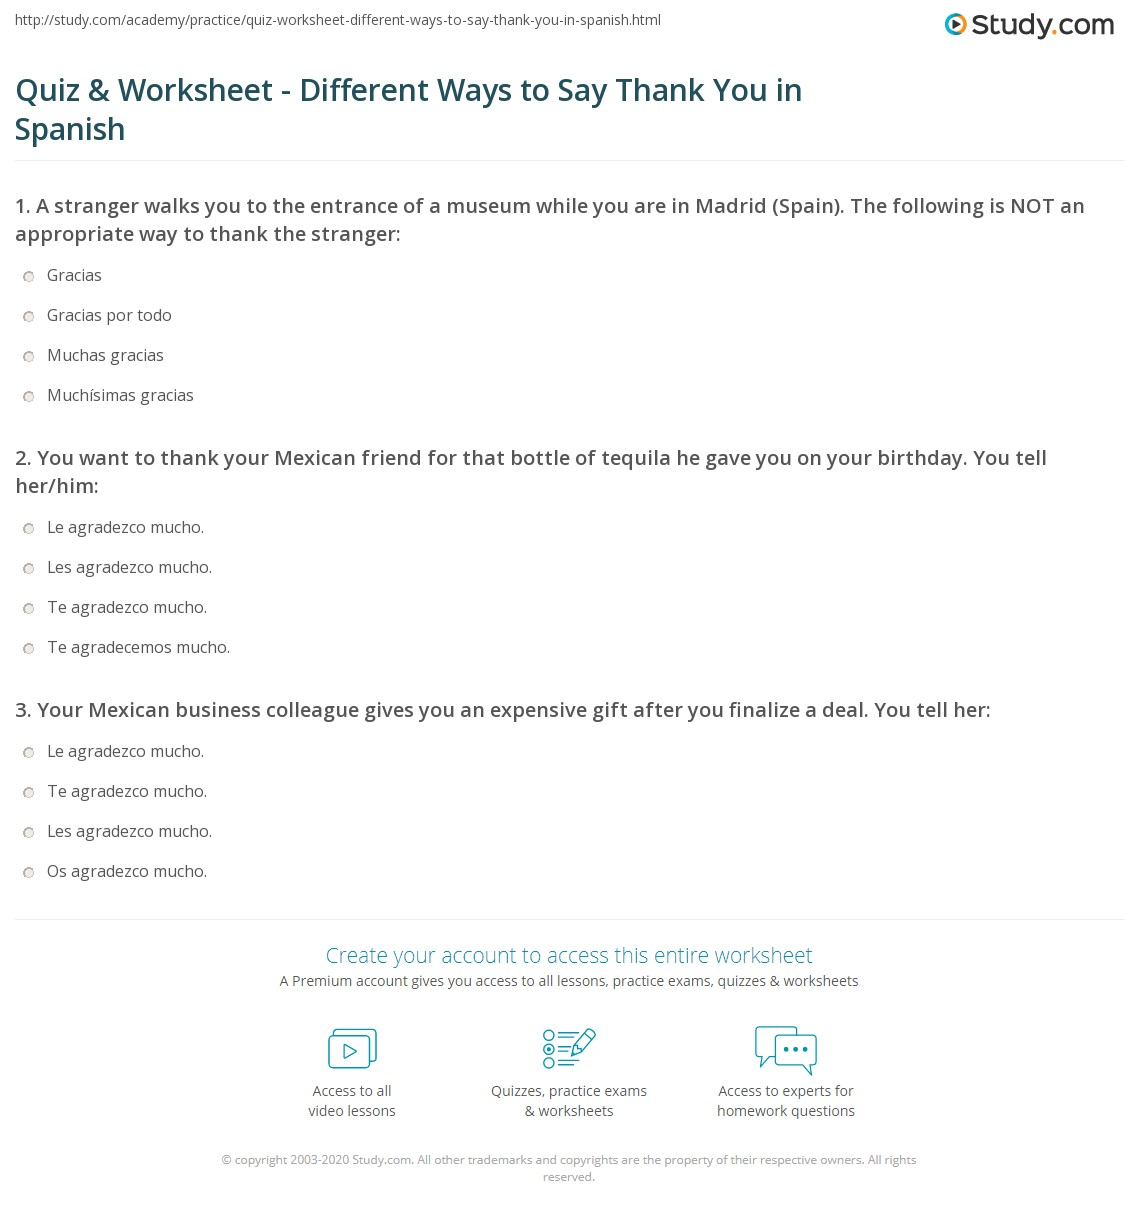 Outstanding Thank You Spanish Thank You Ma Spanish Spanish Spanish Worksheet Quiz Worksheet Different Ways To Say Thank You Print Different Ways To Say Thank You inspiration Spanish For Thank You